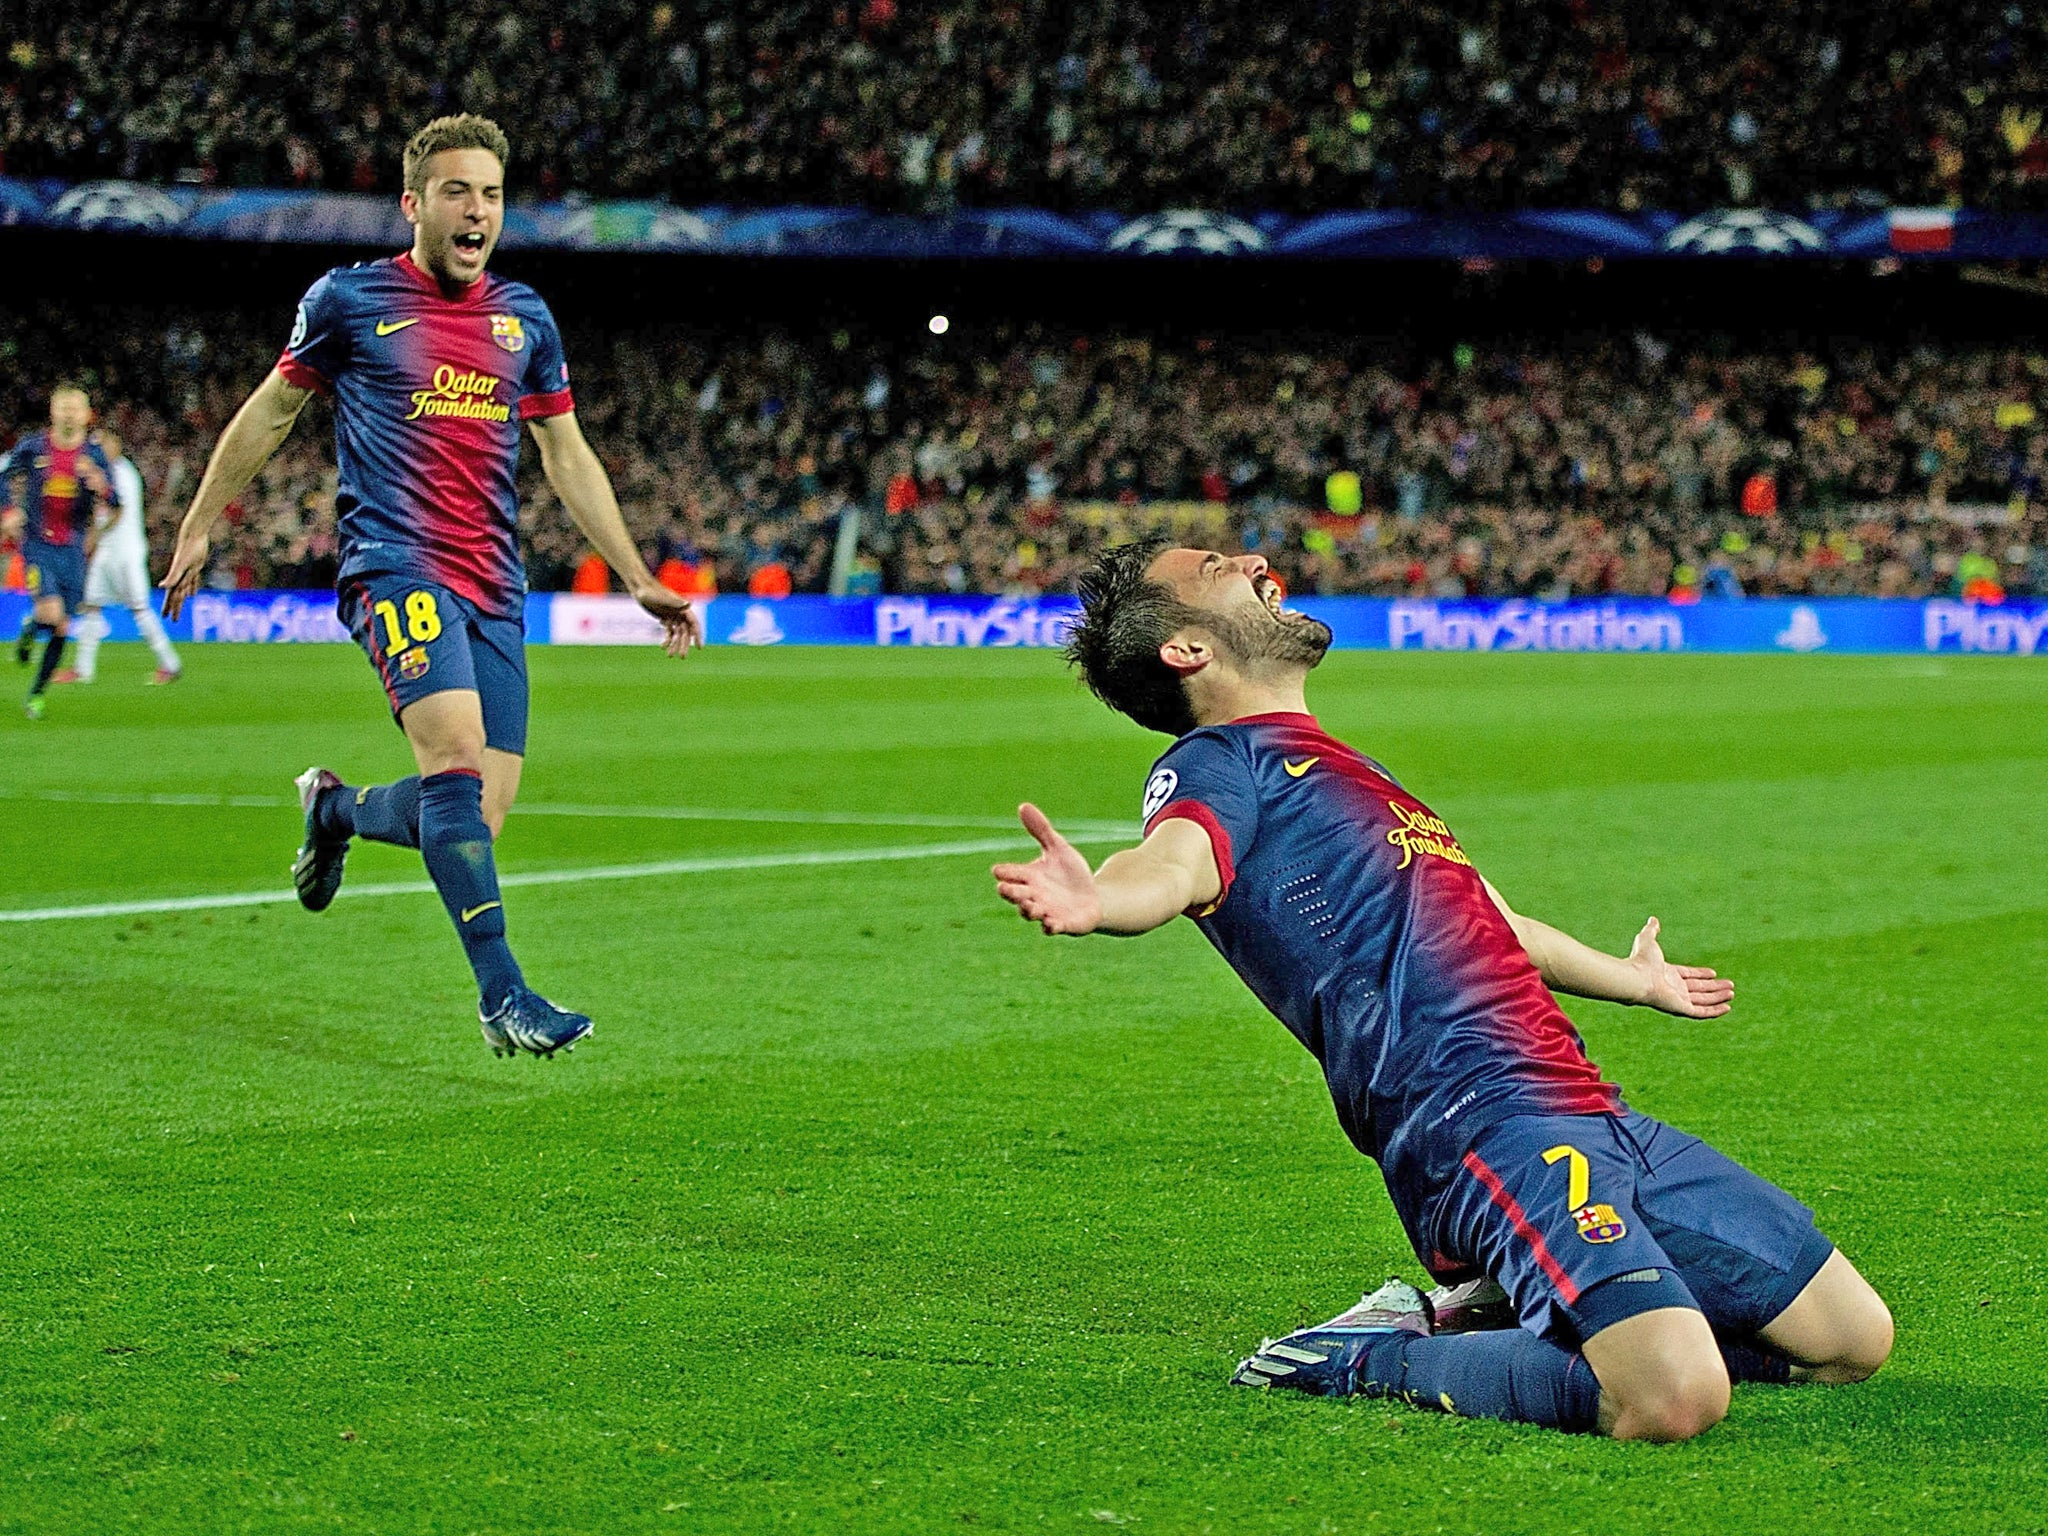 Ac milan v barcelona betting preview goal pawel betting lines